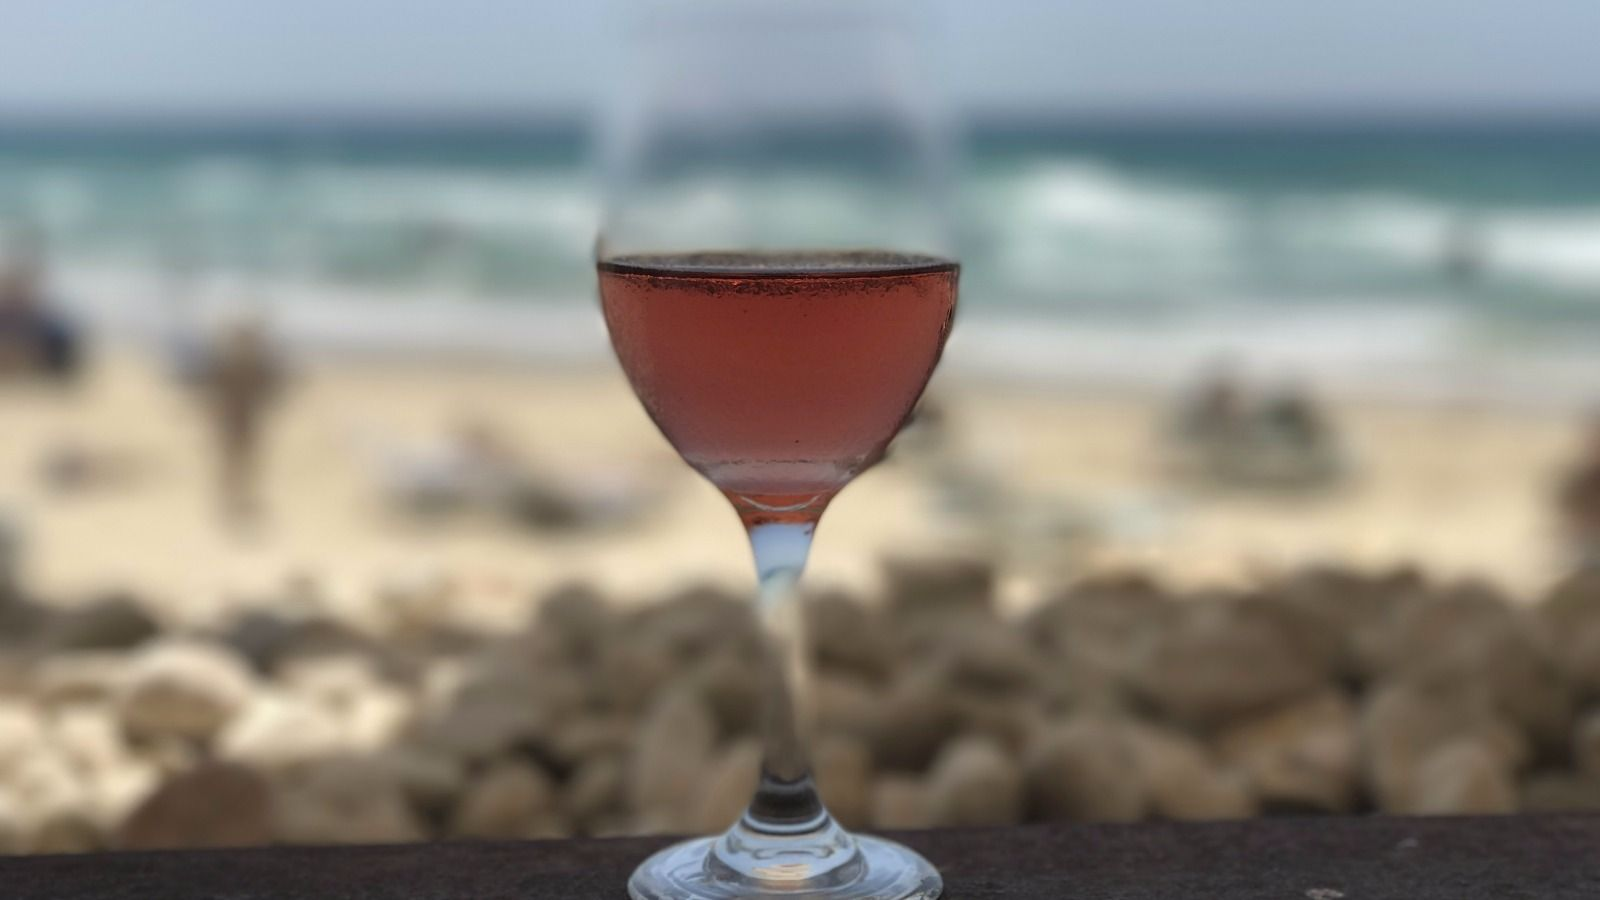 This rosé, called Blue C, is from Covenant Israel. It certainly looks right at home by the Mediterranean.